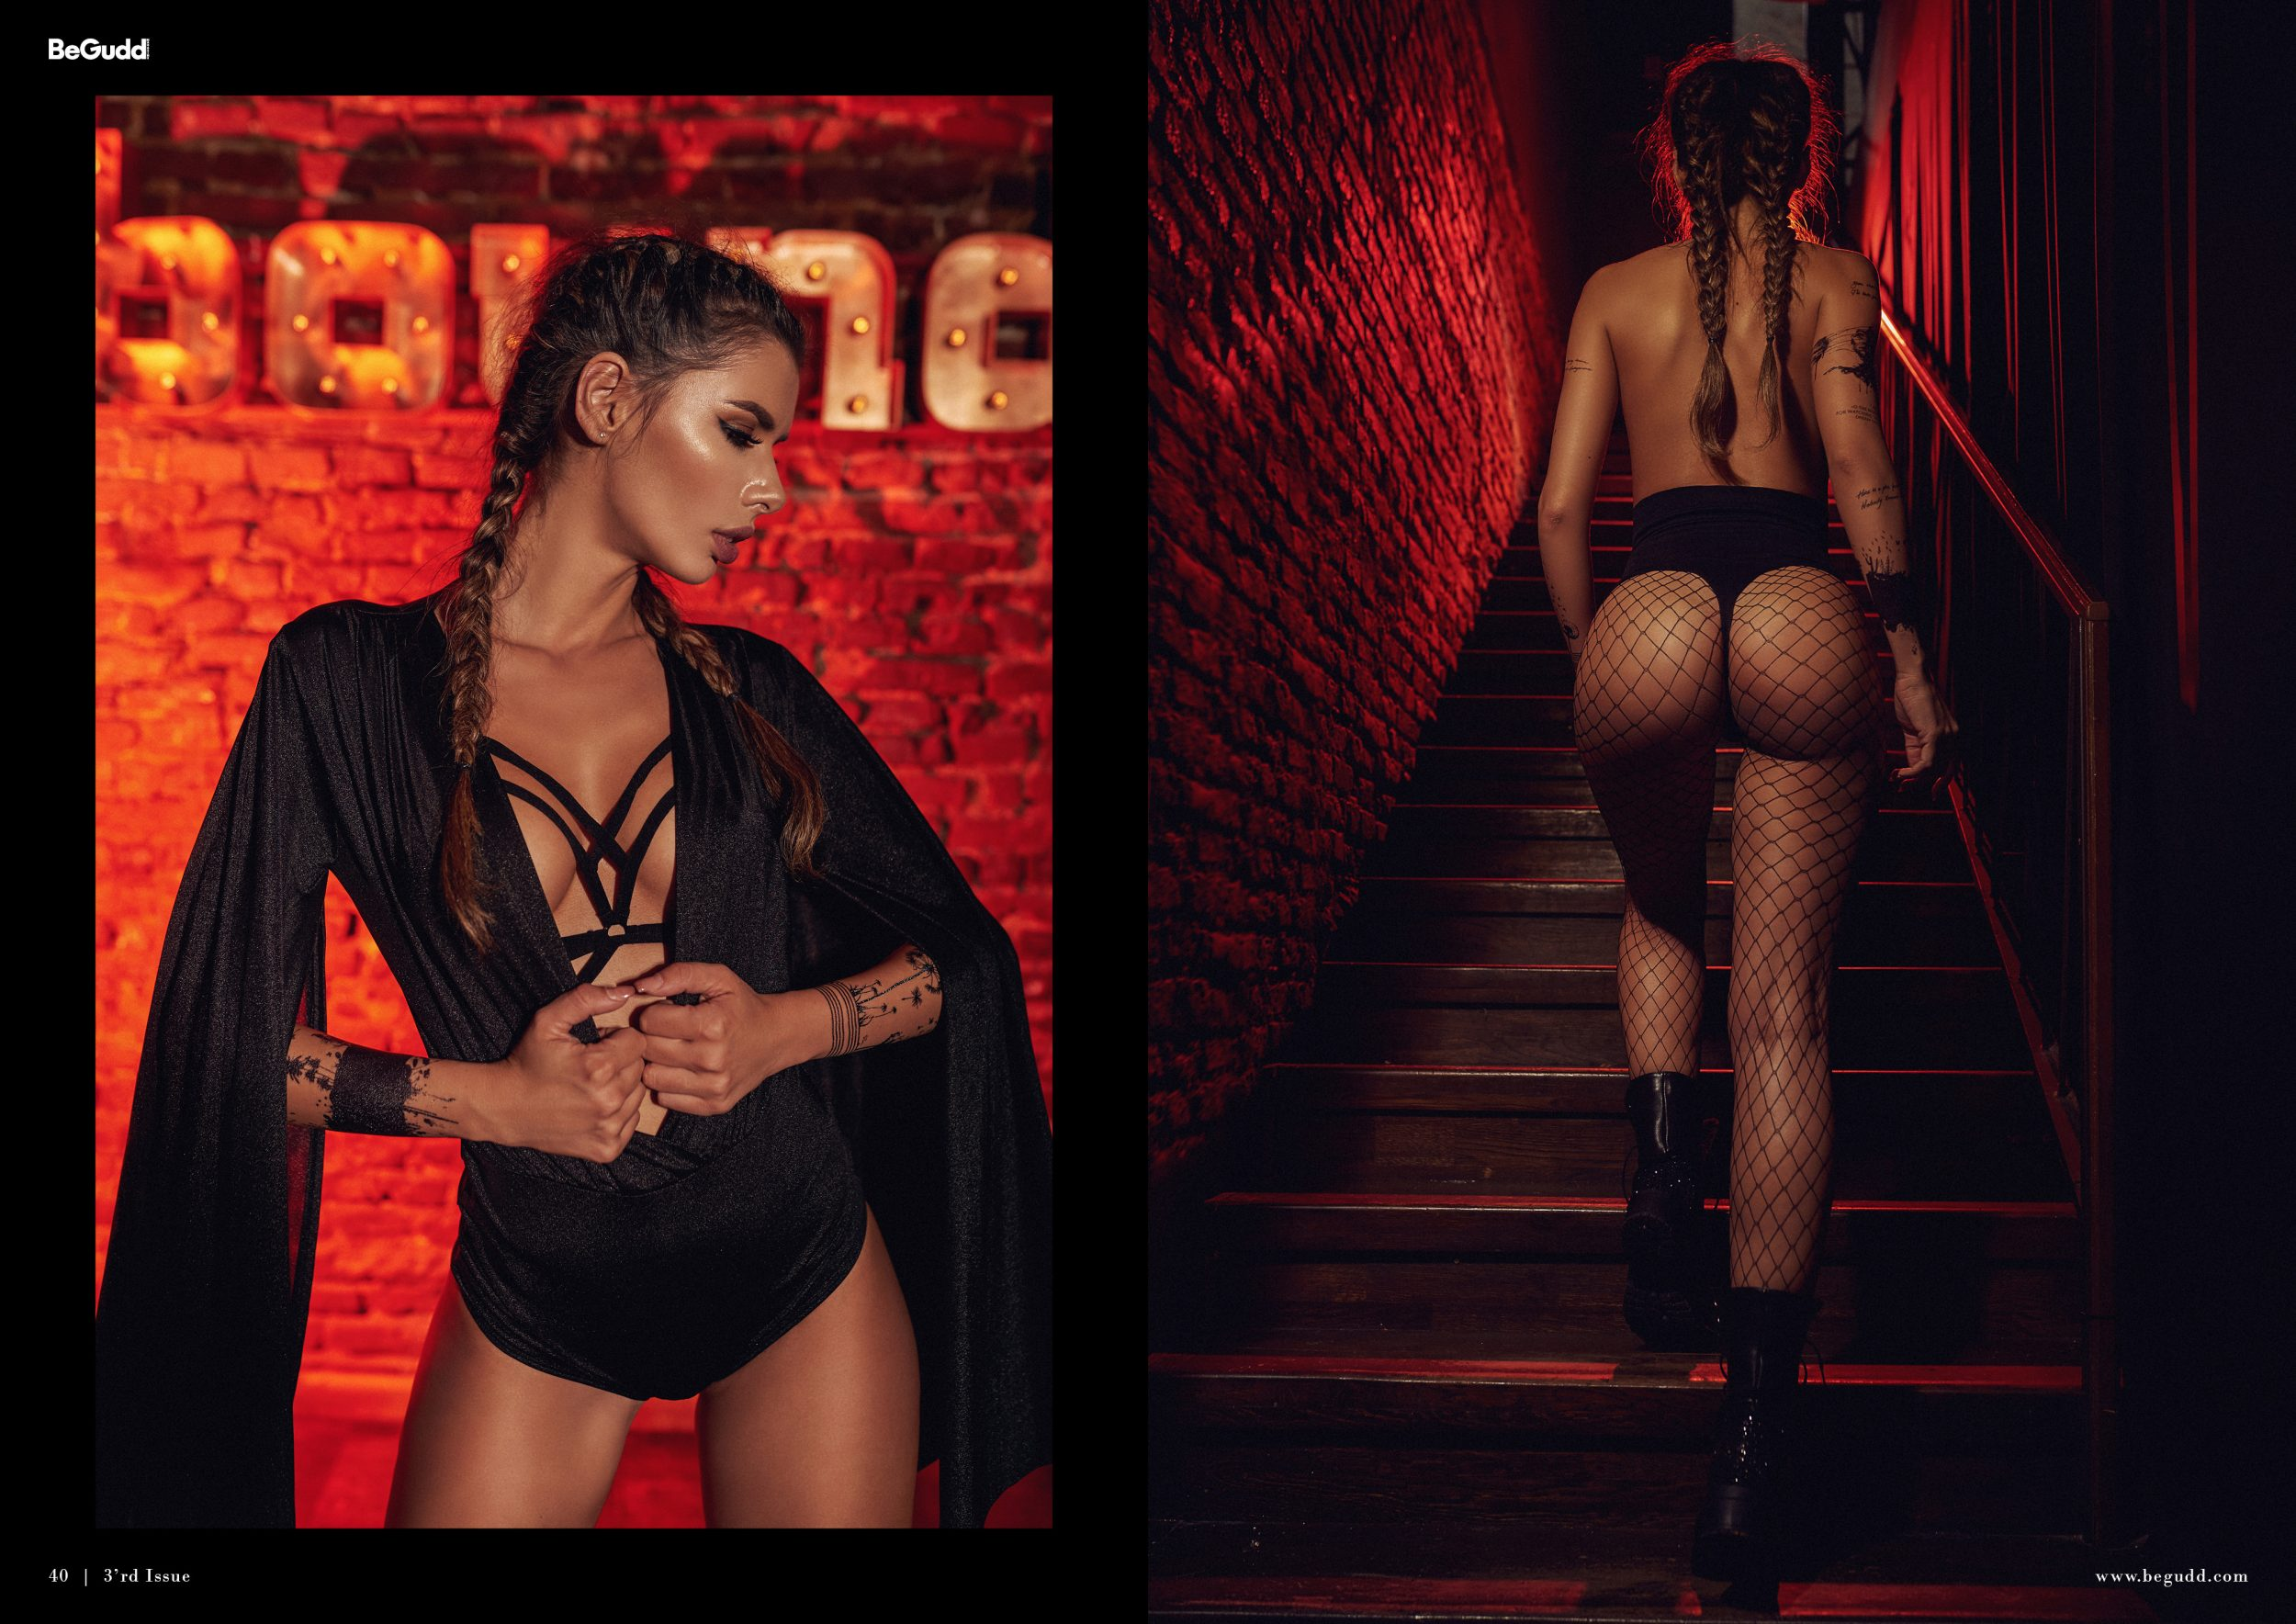 BeGudd-Magazine-ioana-filimon-romanian-celebrity-sexy-model-black-lingerie-night-club-stelian-popa-04